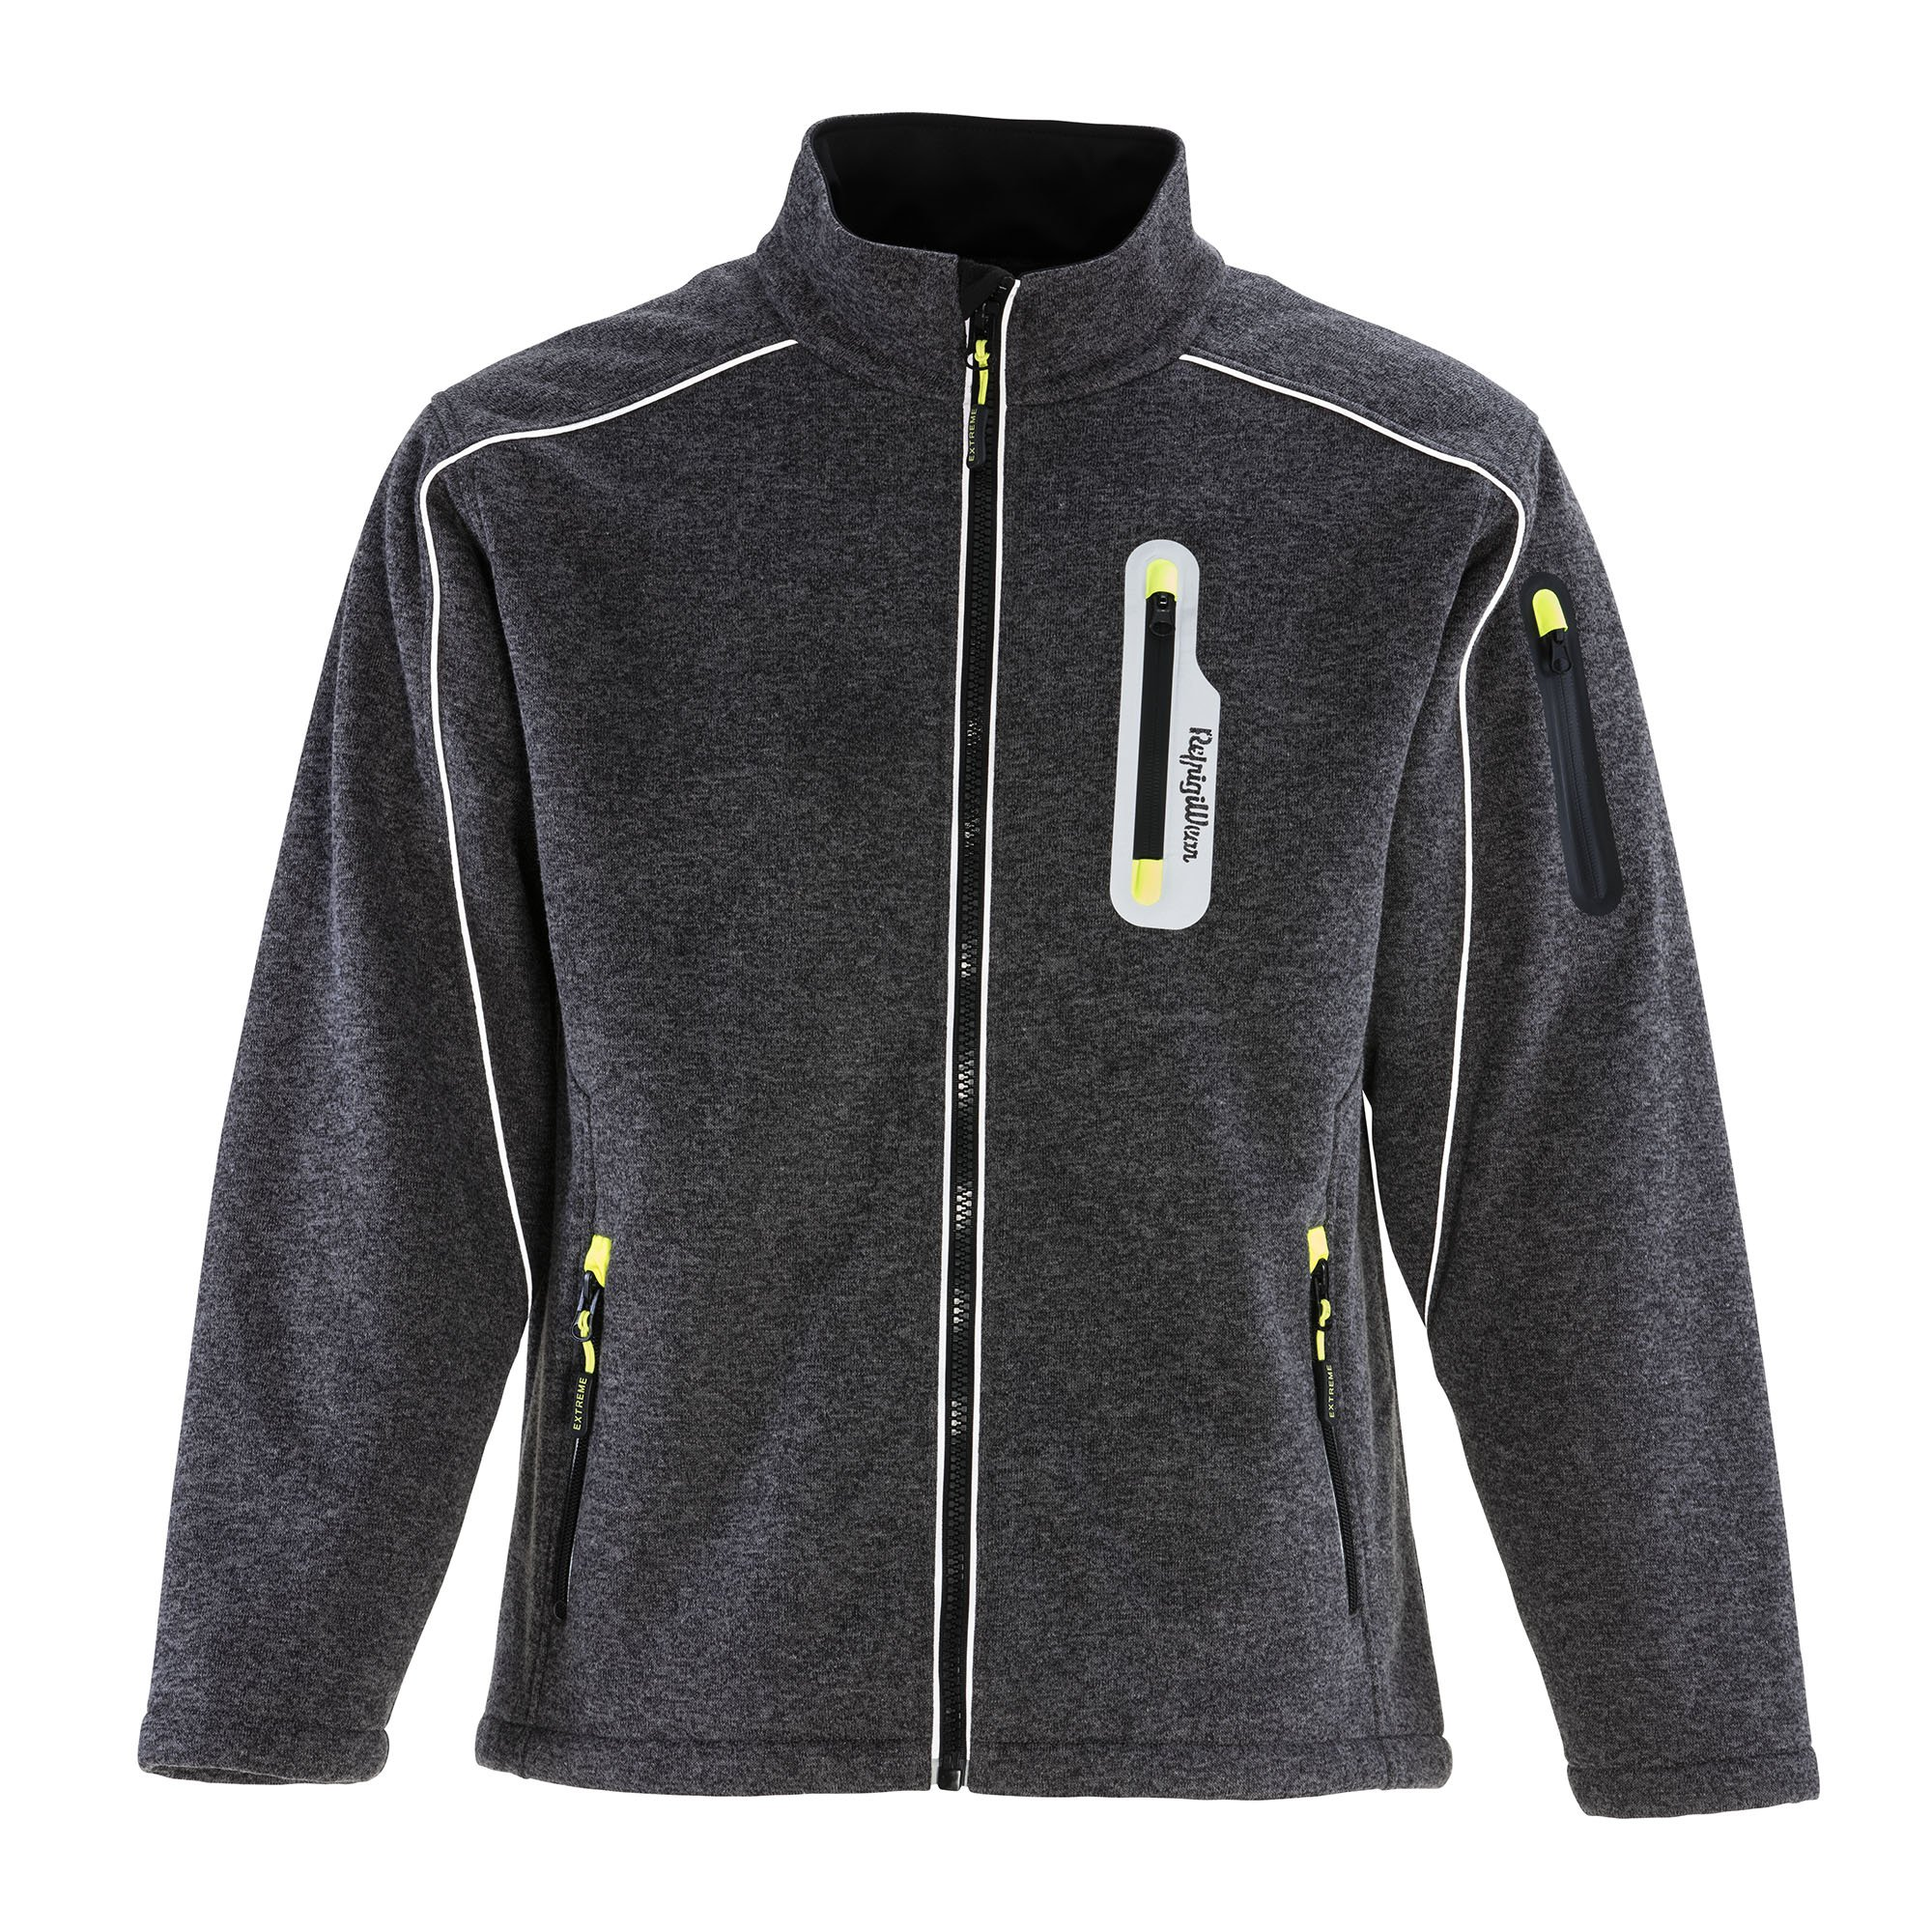 RefrigiWear Men's Fleece Lined Extreme Sweater Jacket with Reflective Piping (Gray, Medium)